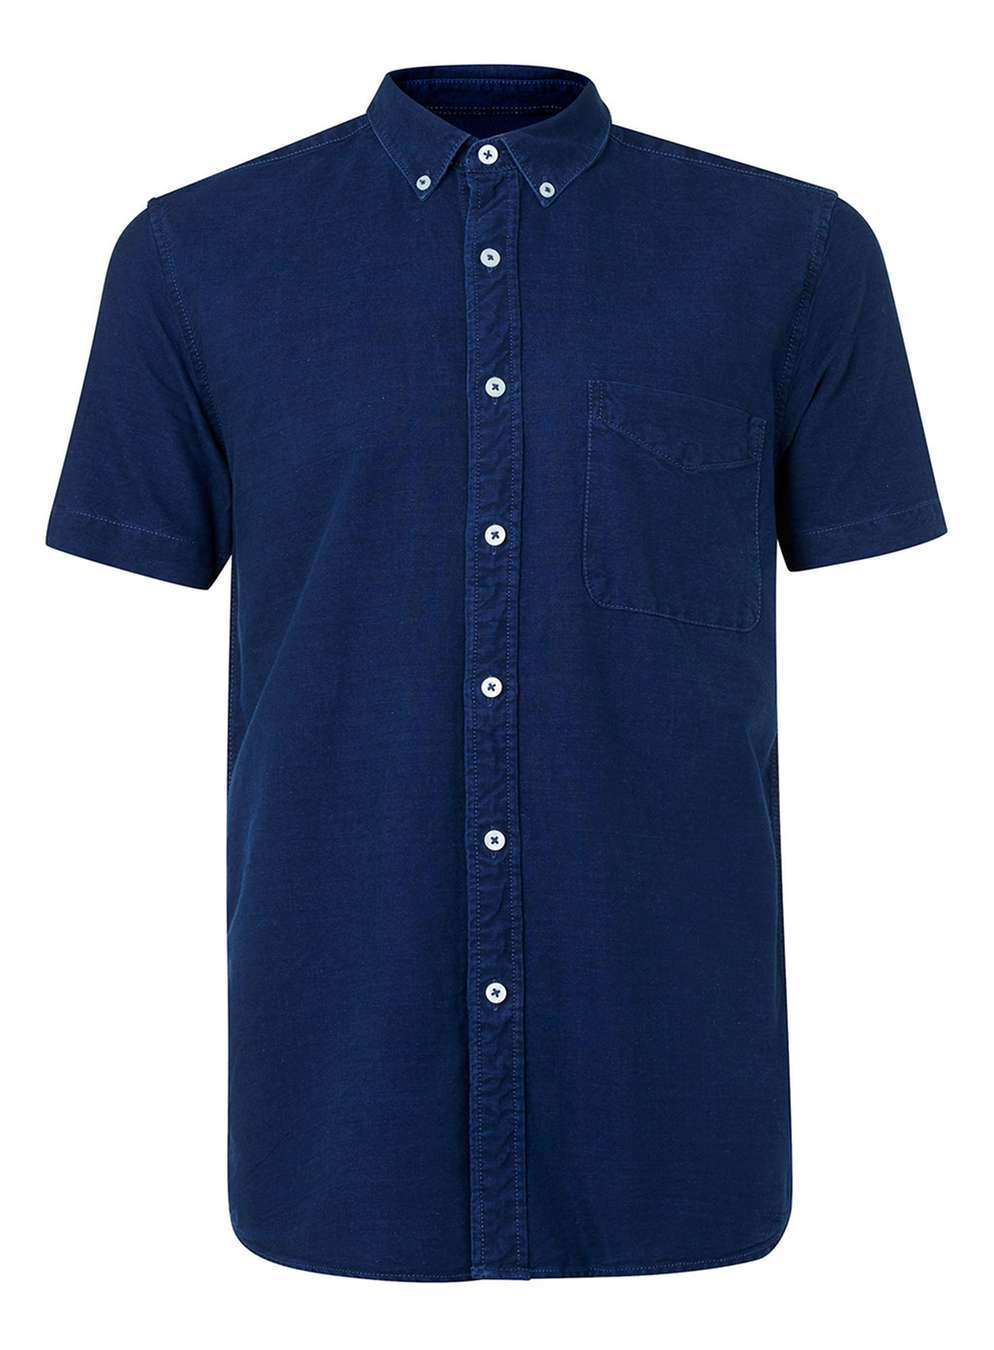 Denim short-sleeve casual shirt, £20 (topman.com)